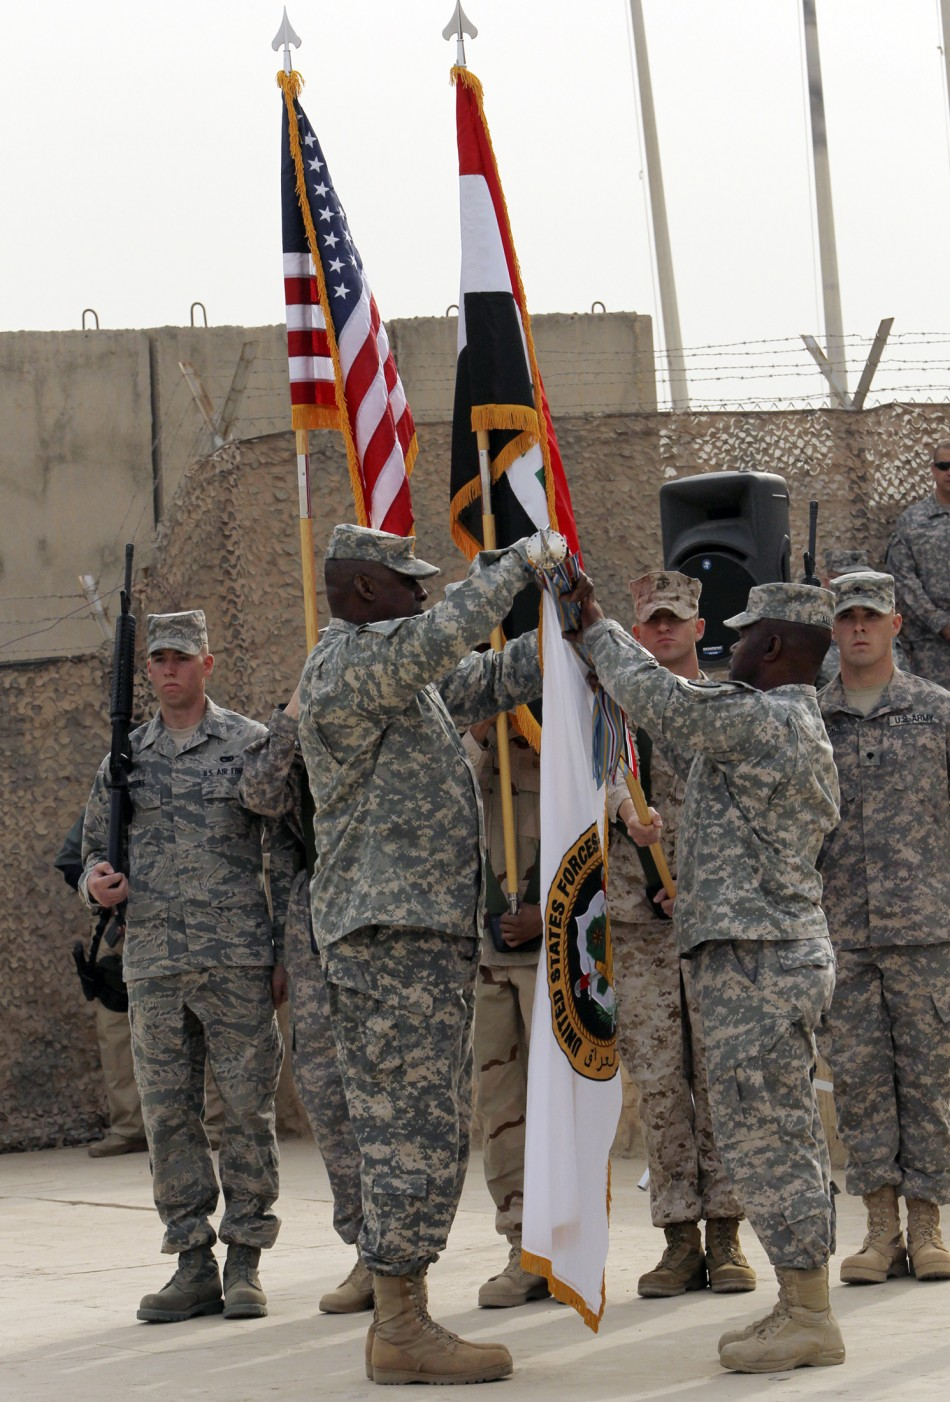 Members of the U.S. military retire its ceremonial flags signifying the end of their presence in Iraq at the Baghdad Diplomatic Support Center